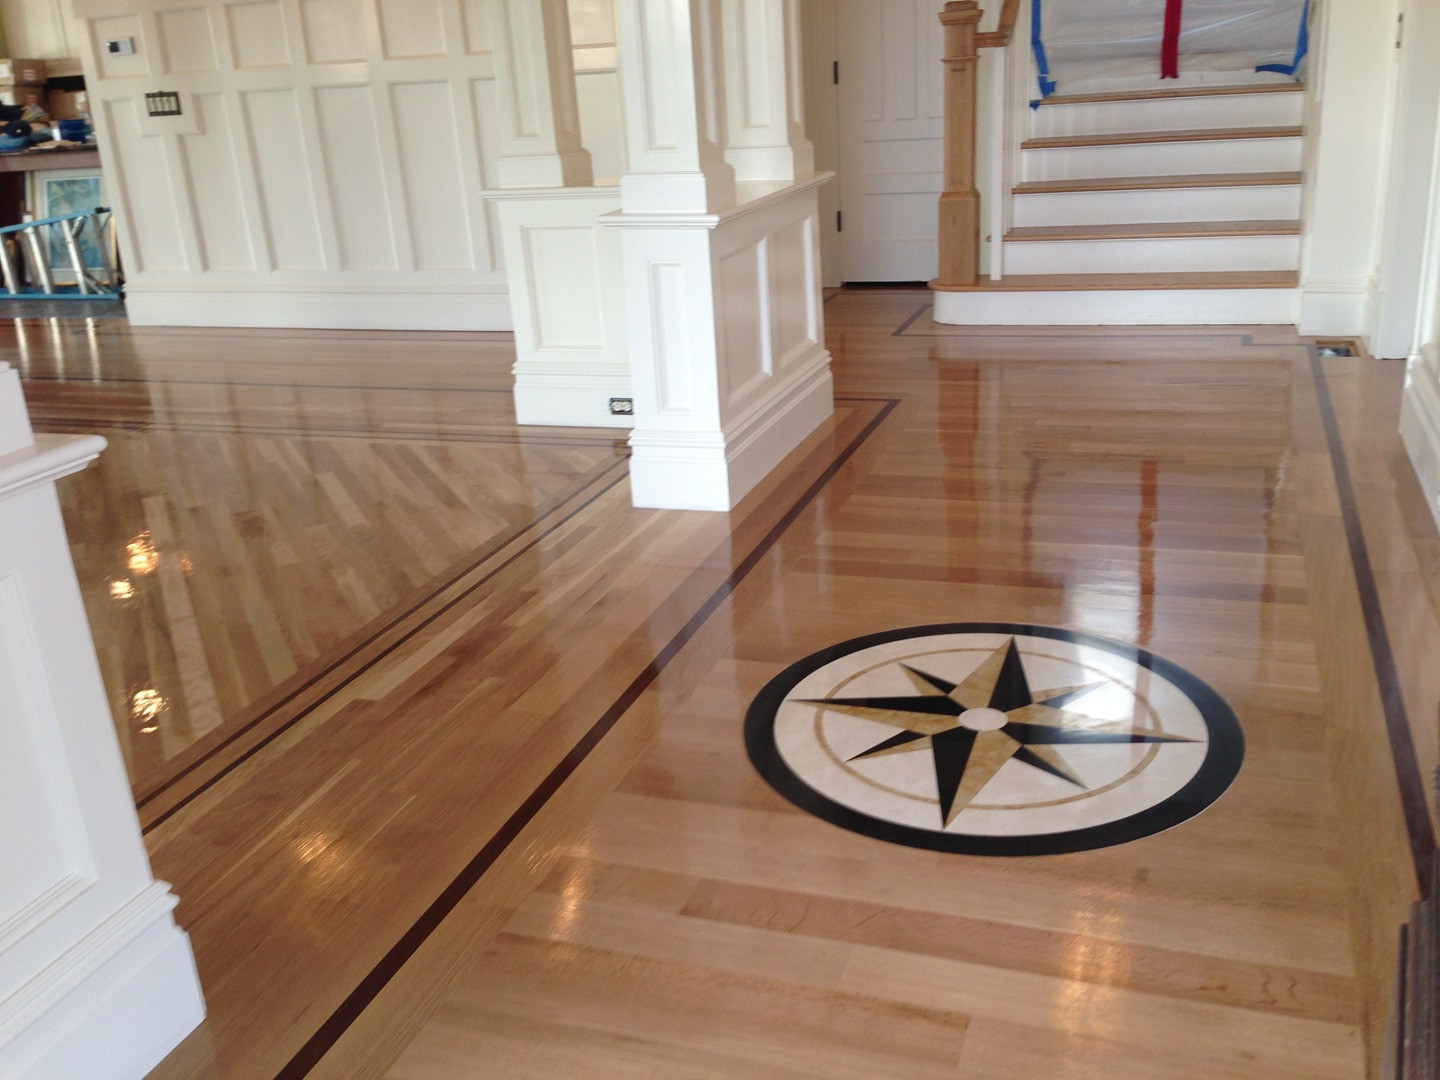 hardwood floor repair denver co of j r hardwood floors l l c home pertaining to after pic